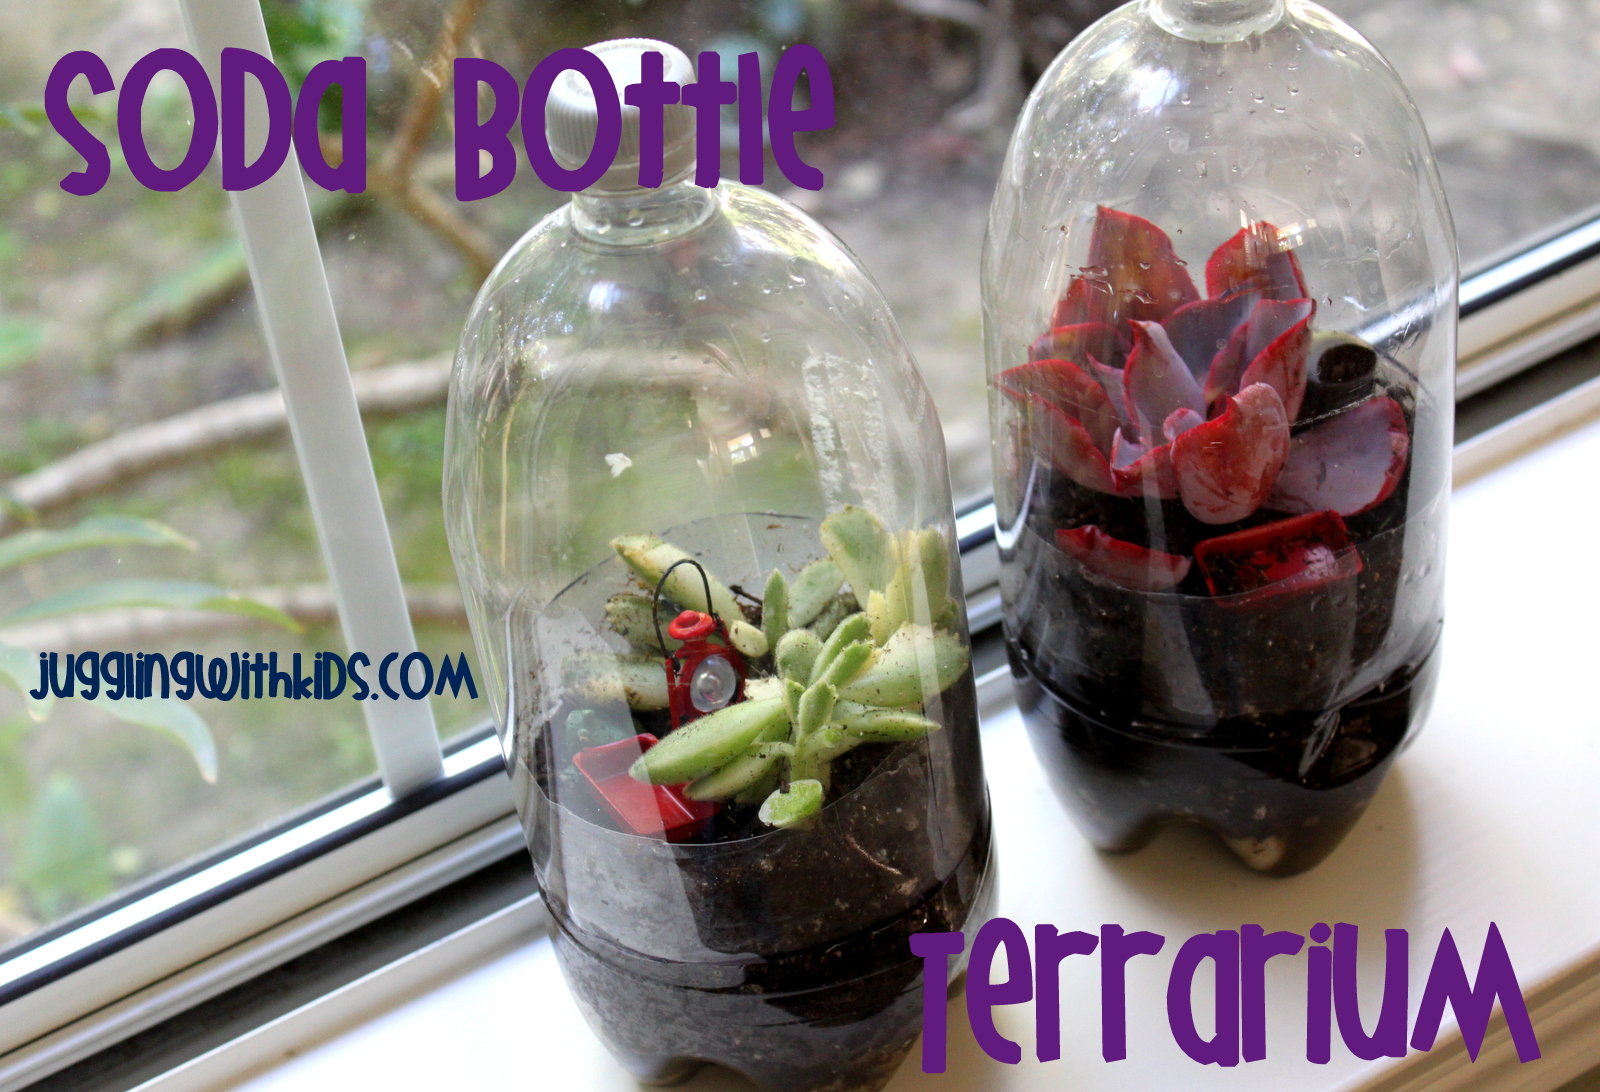 Soda Bottle Terrarium Juggling With Kids